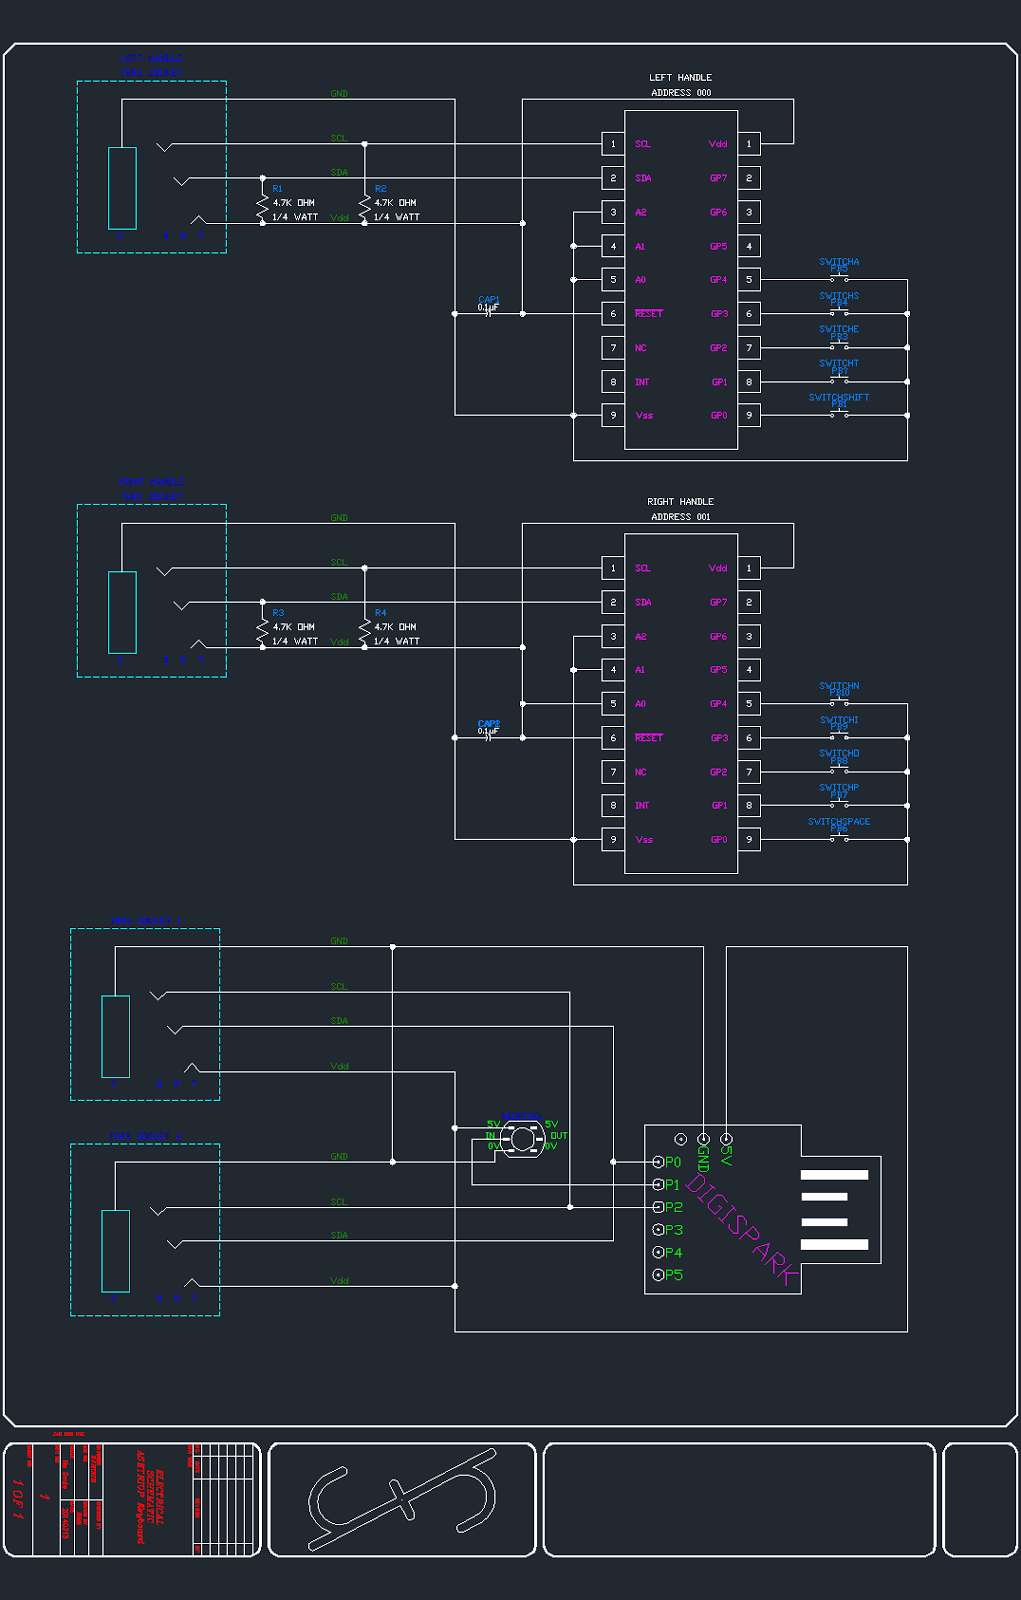 CAD Rendering of schematic for ASETNIOP hardware keyboard